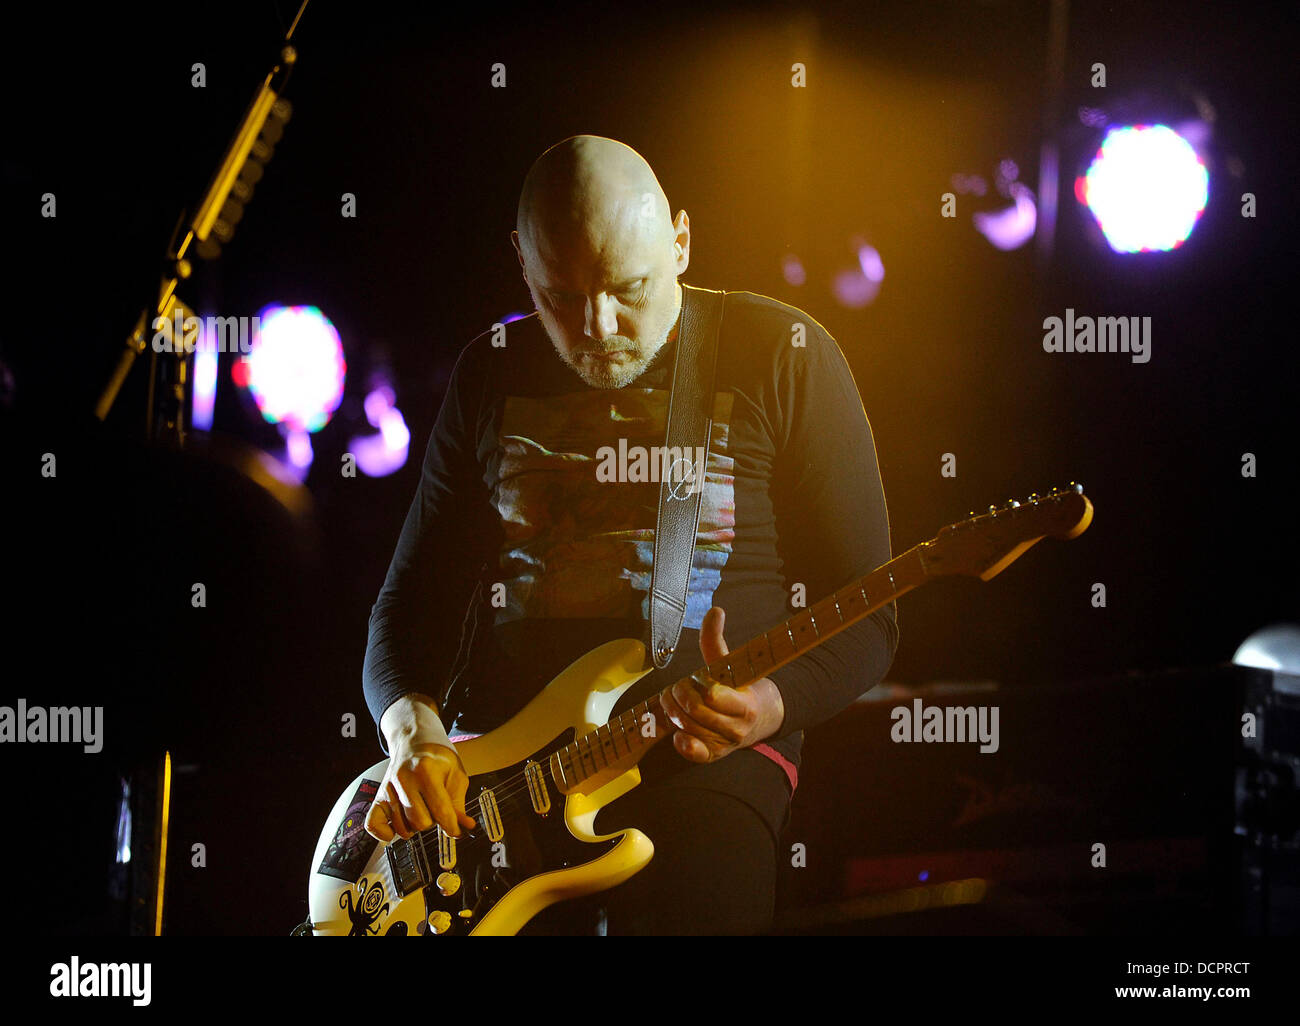 Billy Corgan of American rock band The Smashing Pumpkins performing 'The Other Side of the Kaleidyscope' - Stock Image